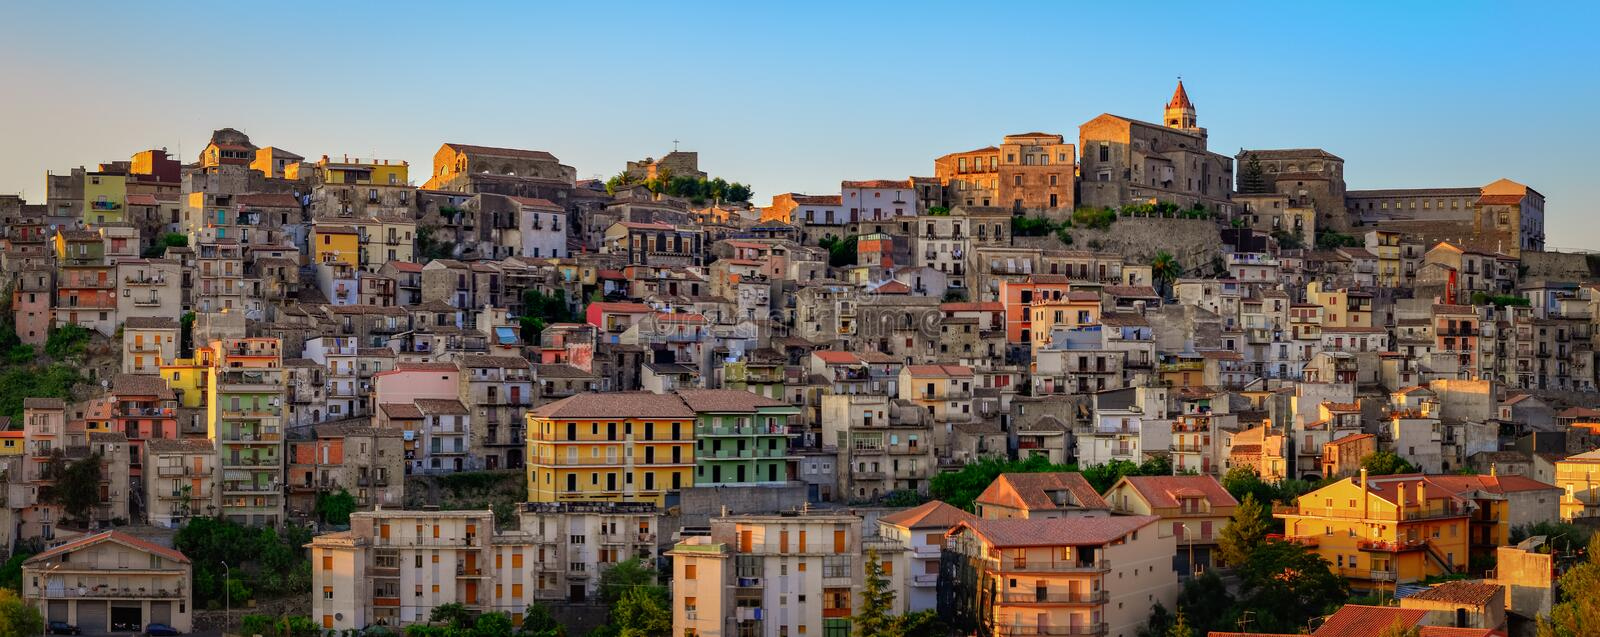 Panoramic view of Castiglione di Sicilia village houses and church, Sicily. Italy stock photo